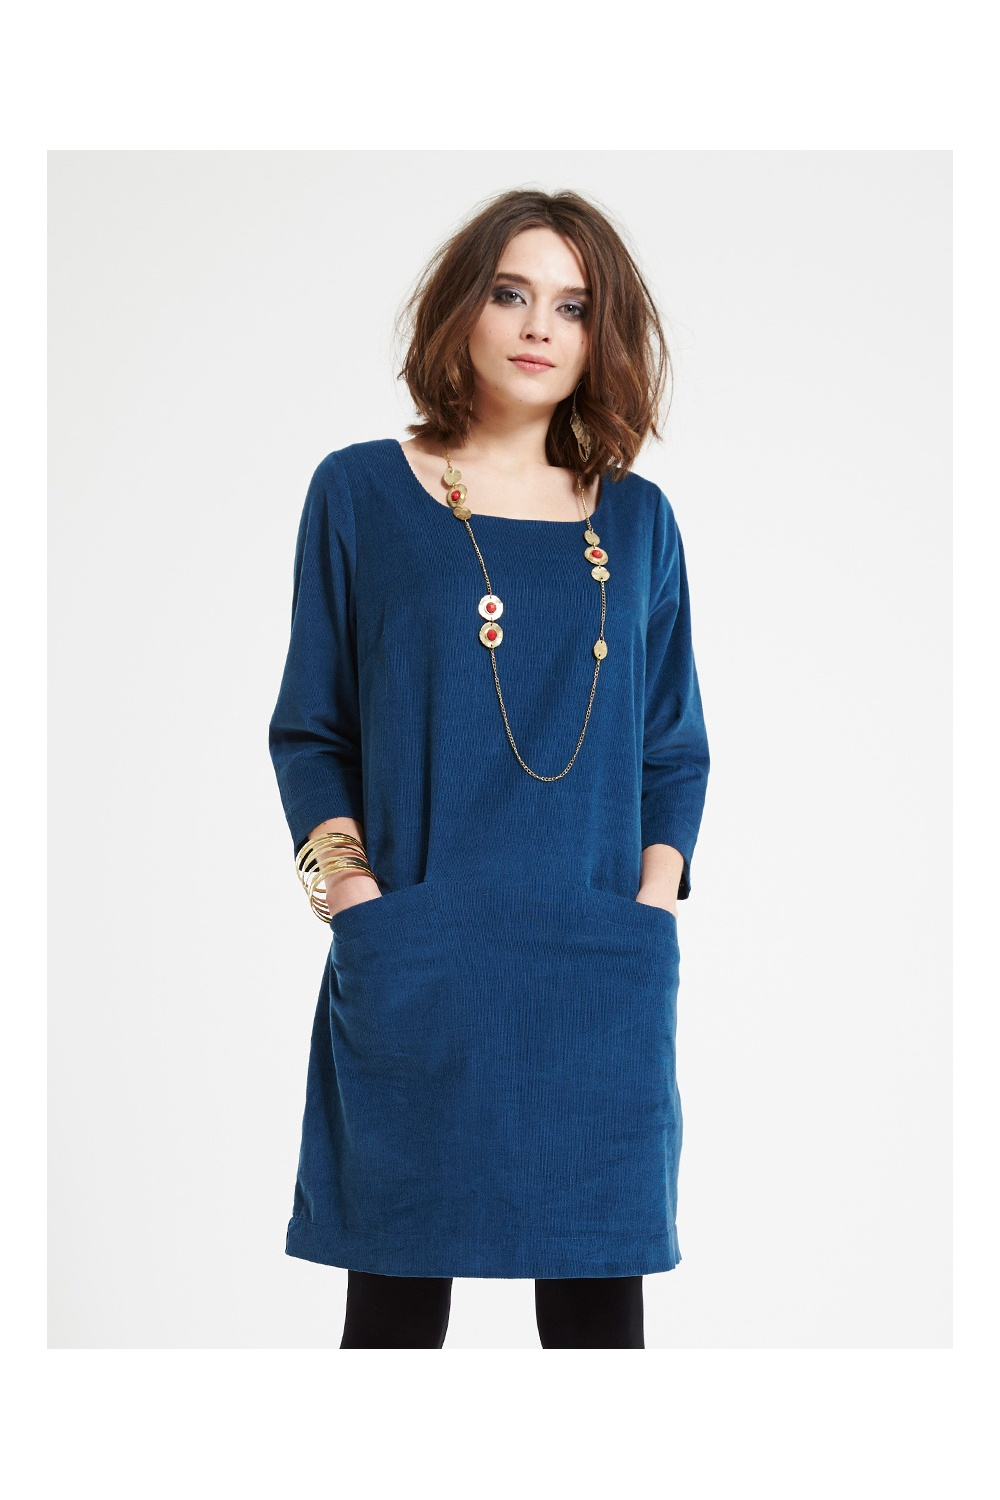 cotemporary cord tunic dress from nomads clothing